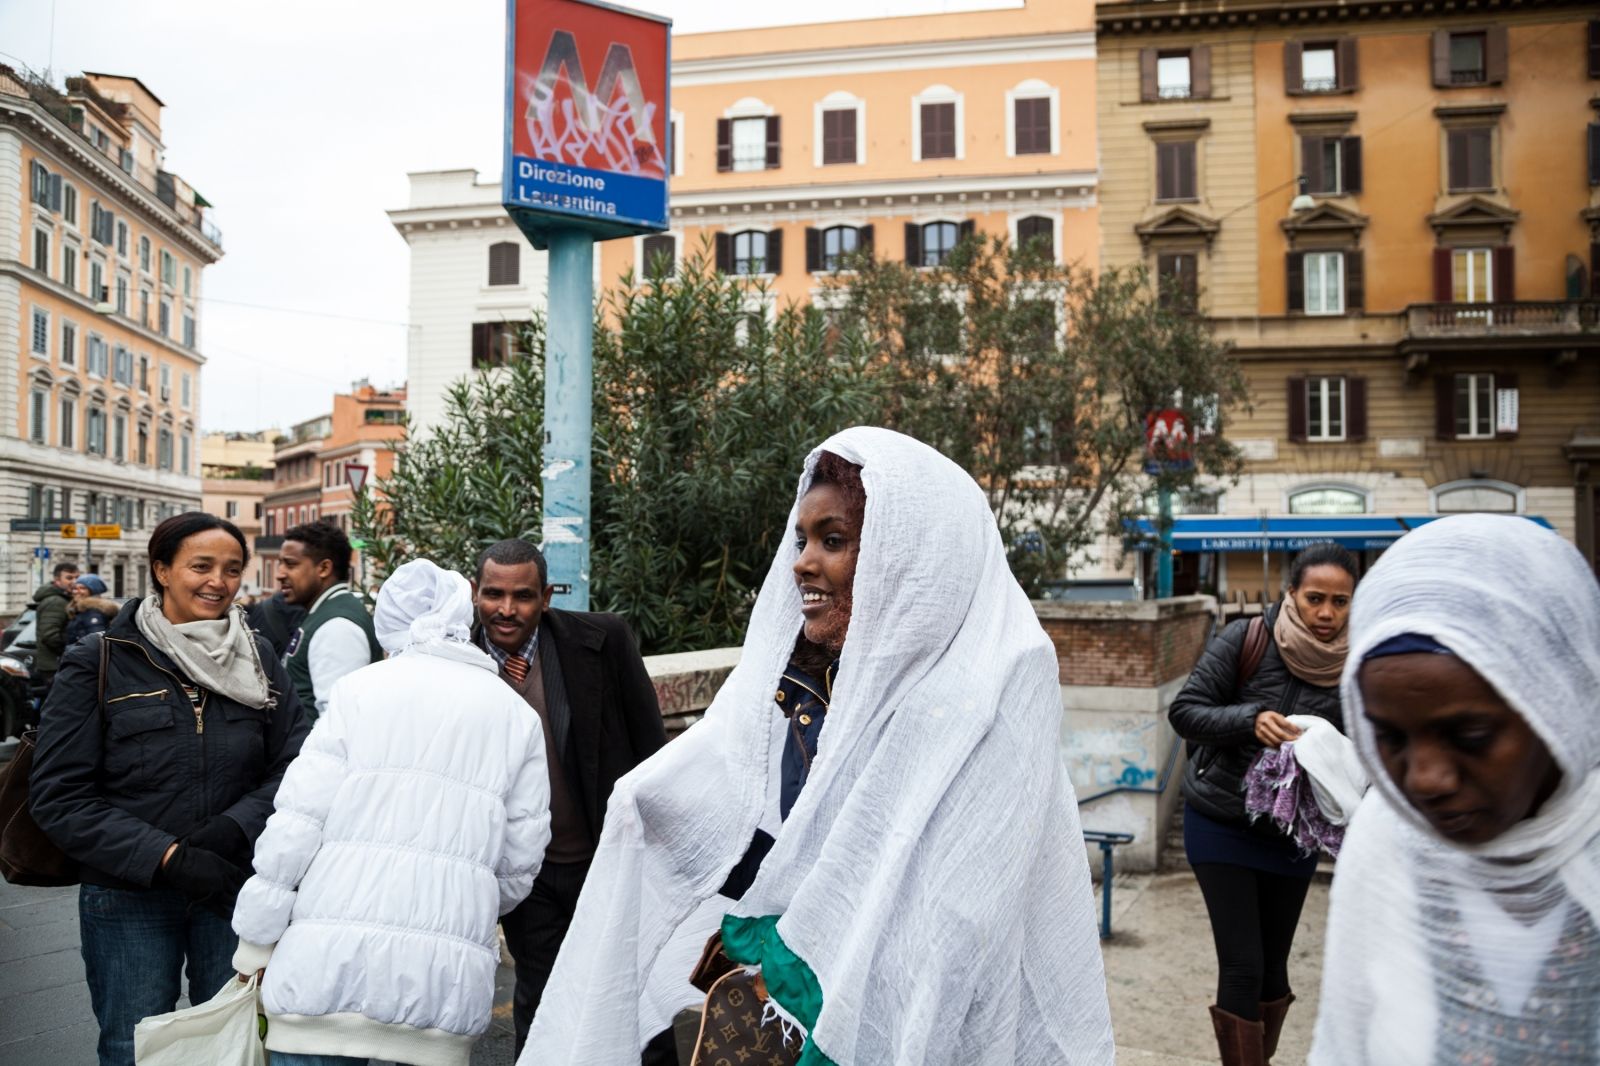 Members of the Orthodox Ethiopian Tewahedo Church in Rione Monti, downtown Rome, arrive at the church for Sunday morning celebrations.